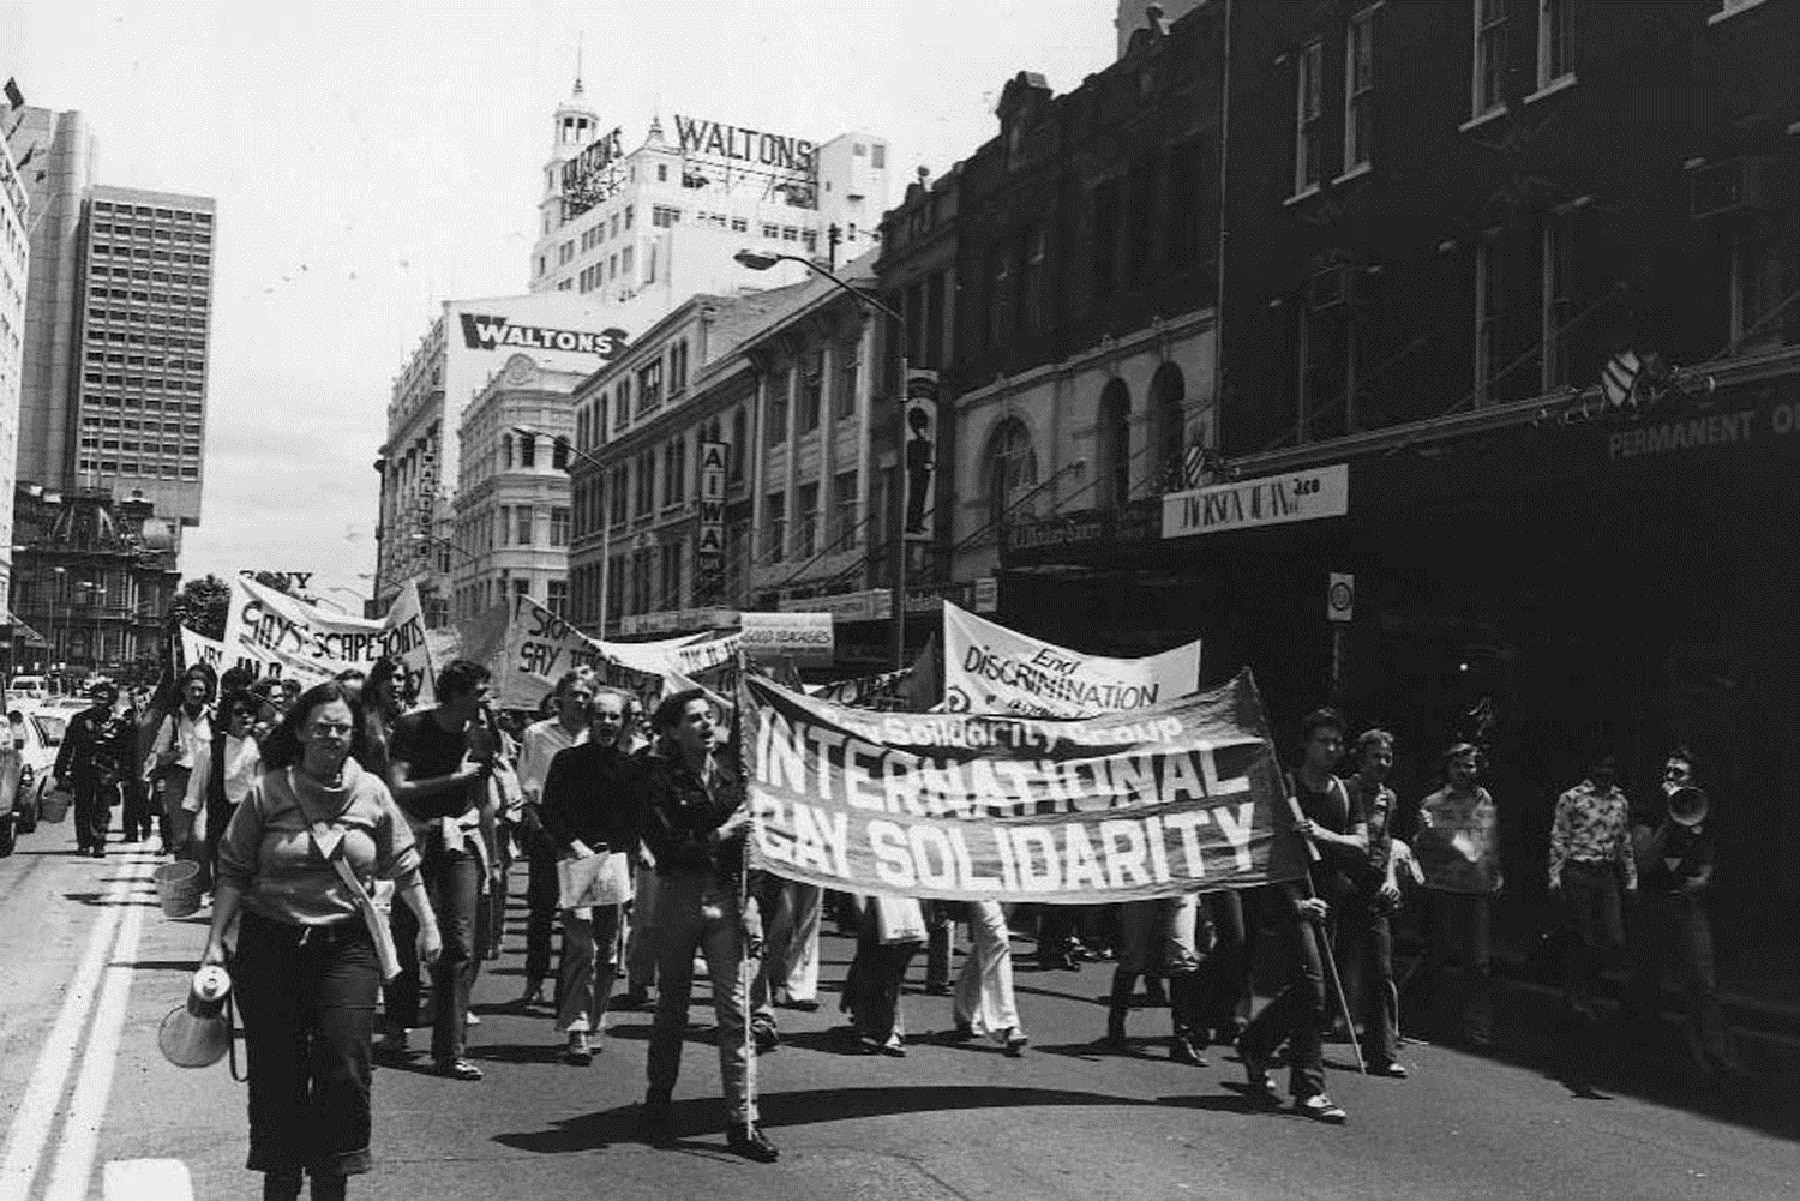 INTO THE STREETS - Explore Sydney's queer past through the Sydney Culture History Walks app Download here…